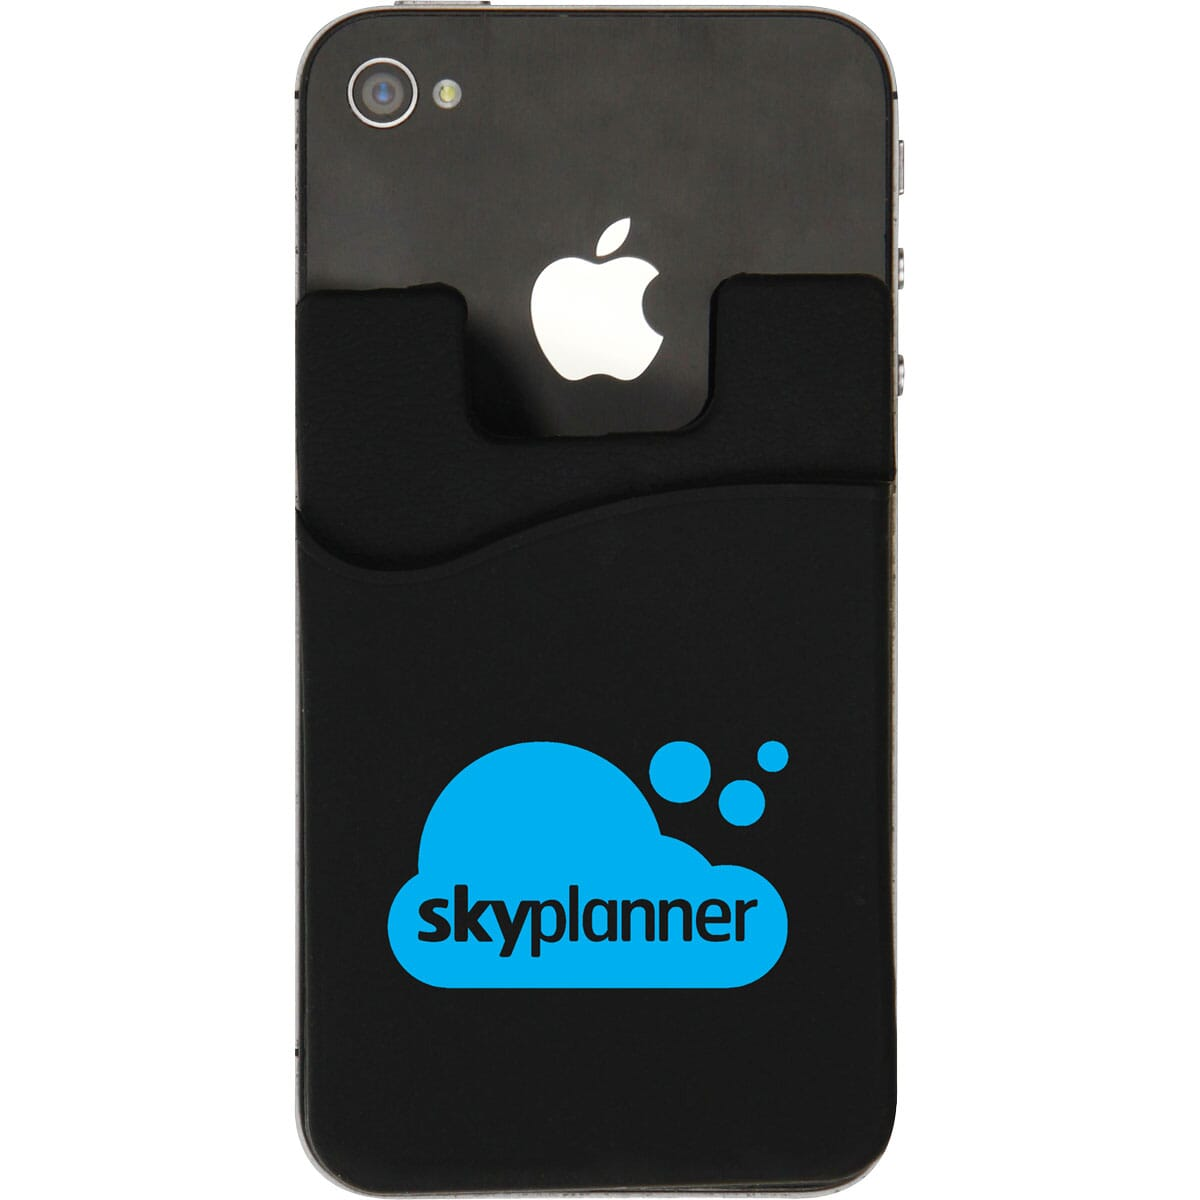 Black silicone phone wallet with blue logo attached to a black iPhone.